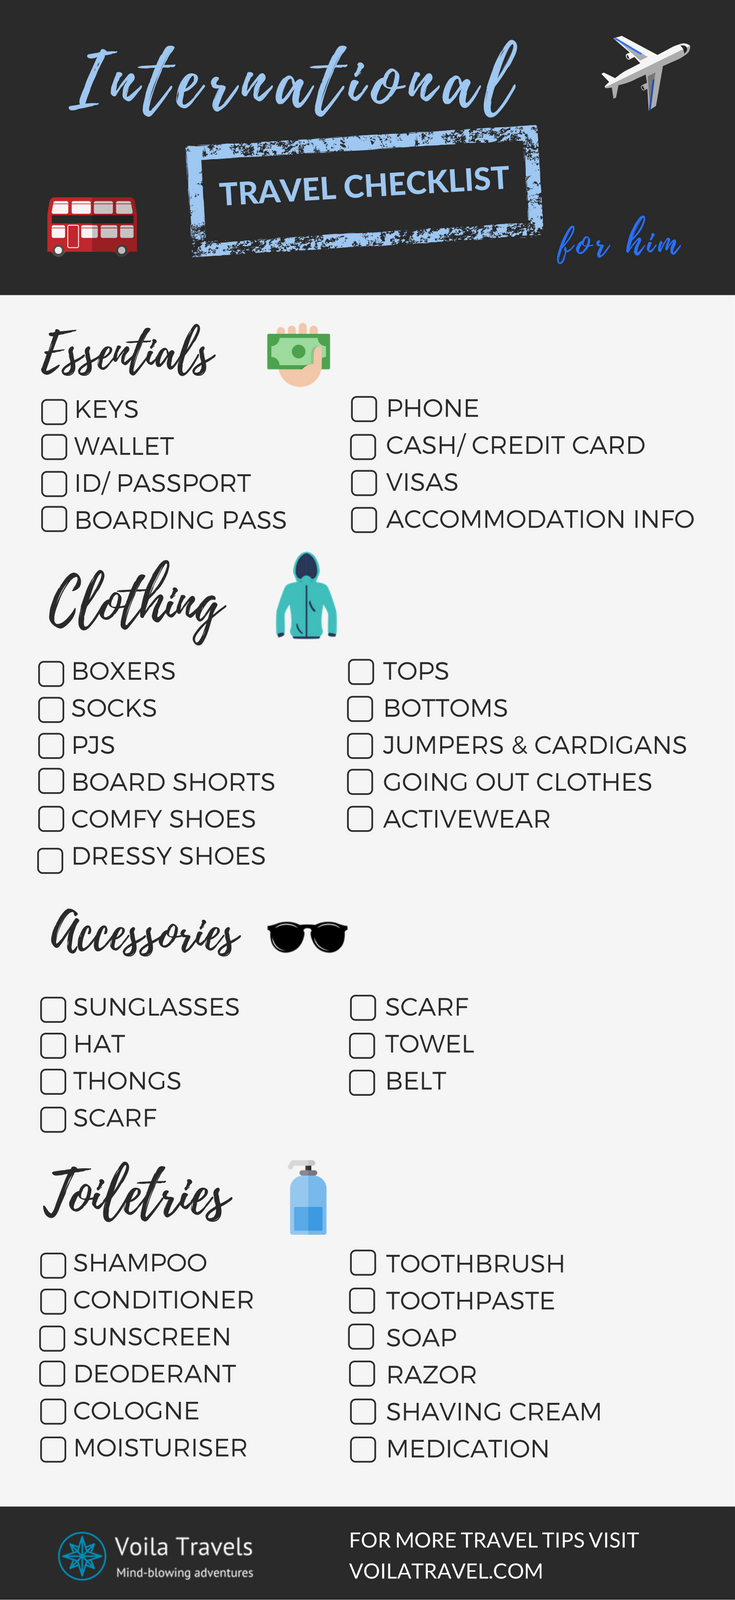 Travel Checklist For Men Remember What To Pack For Your Next Overseas Trip With The Ultimate Packing Tips For Travel Travel Checklist Travel Packing Checklist